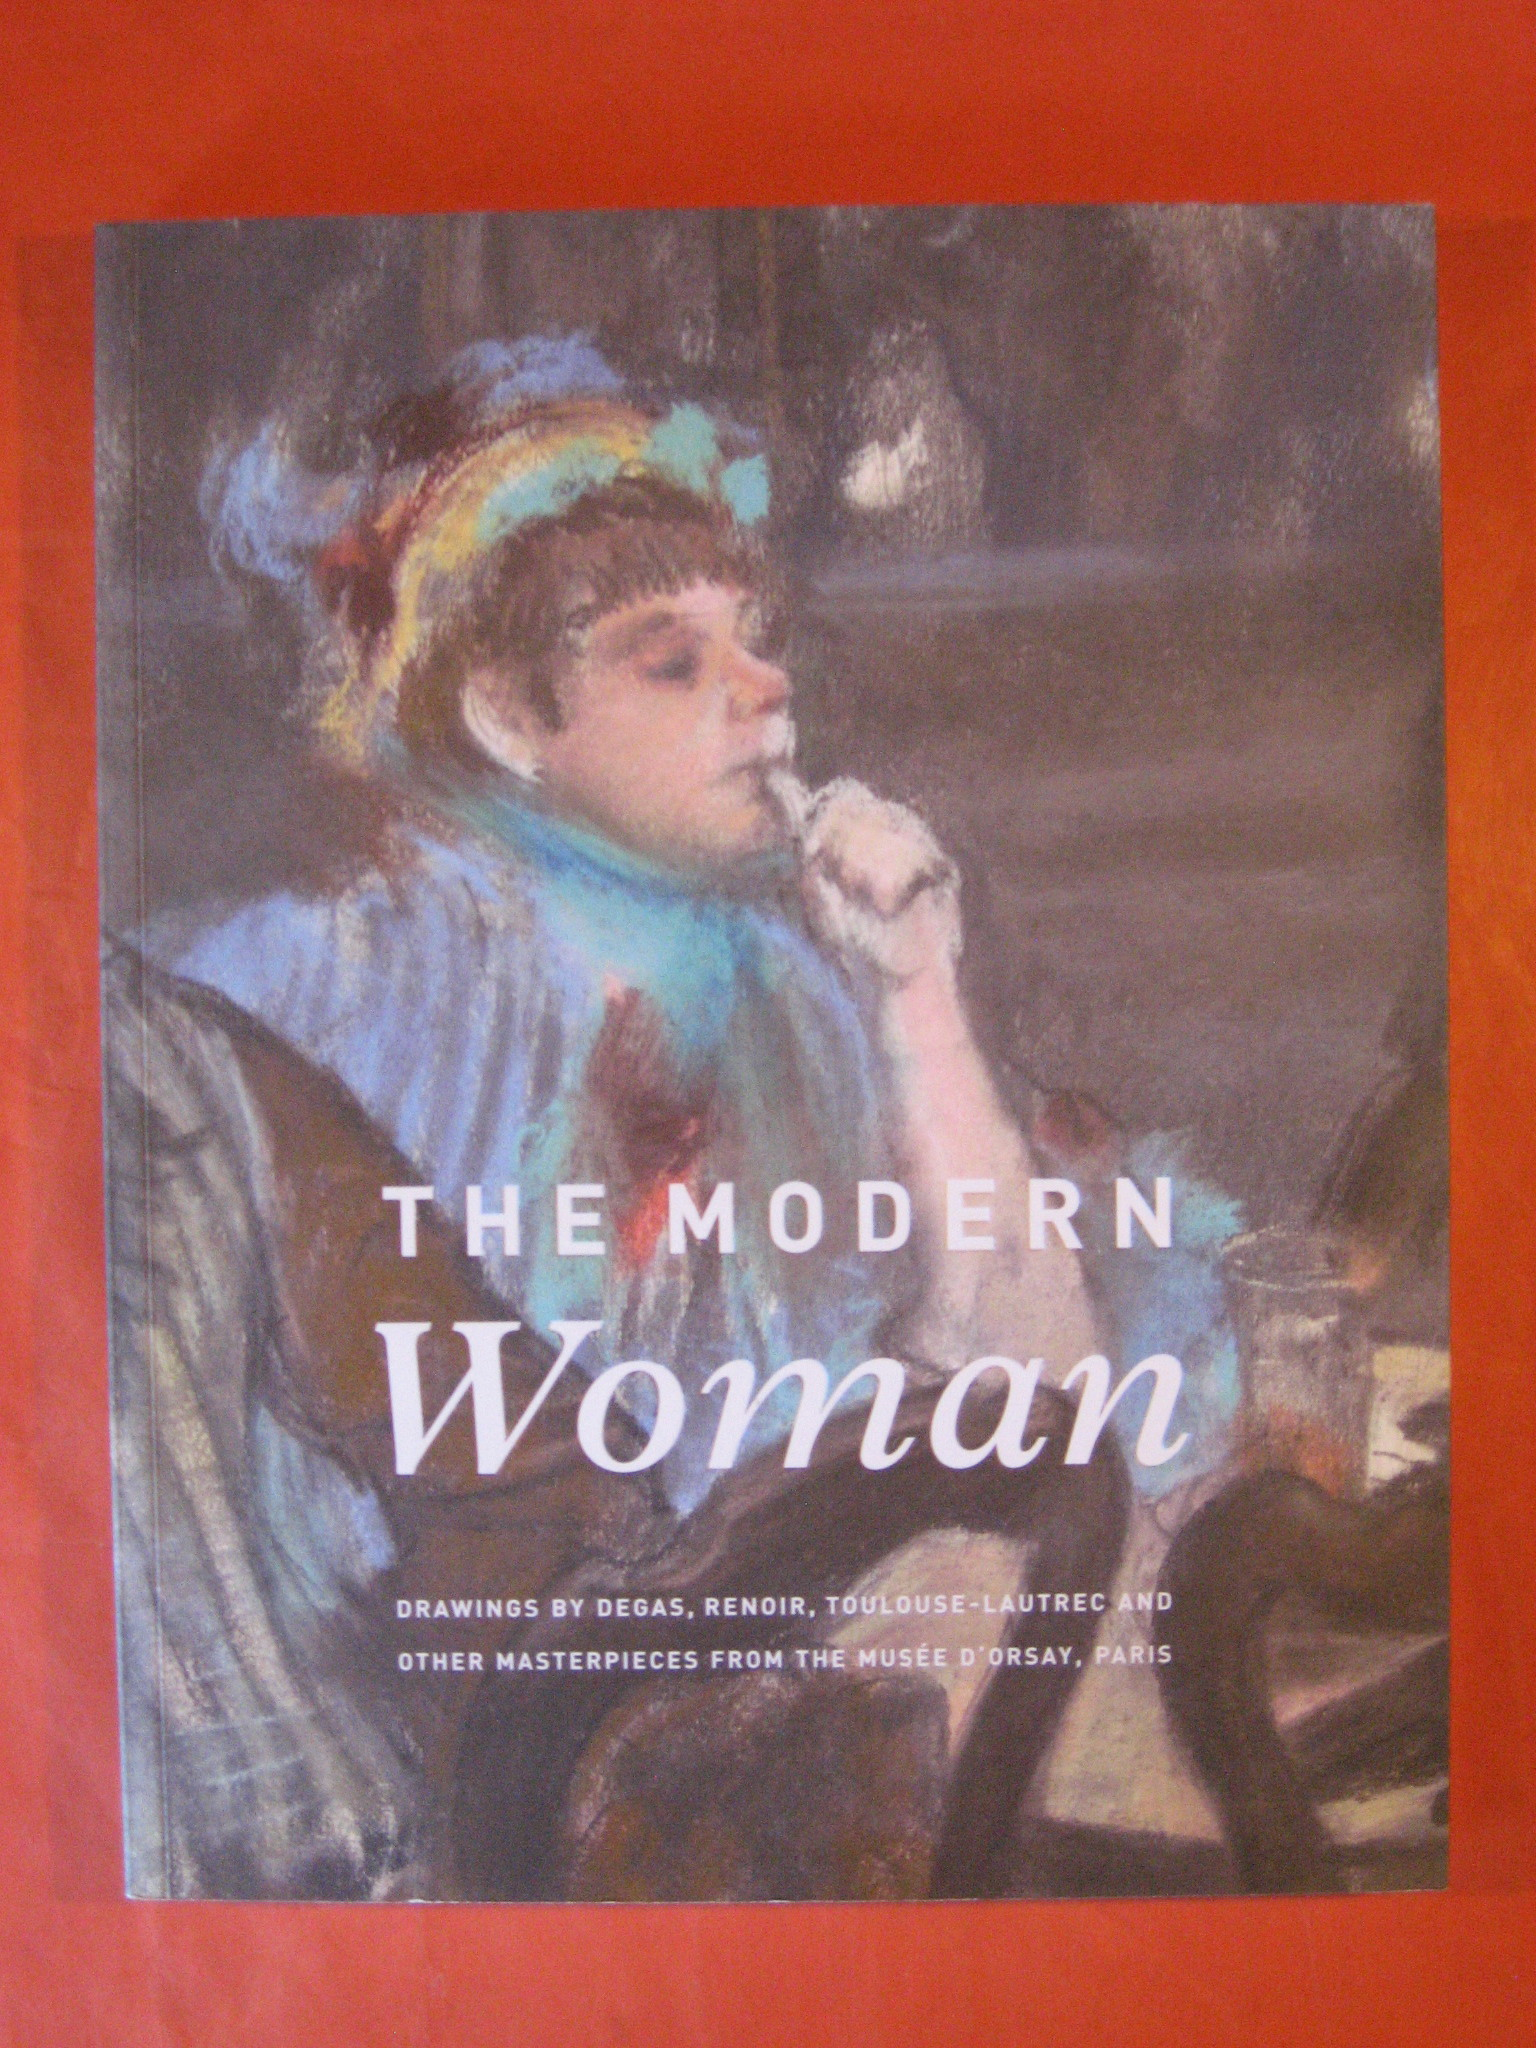 The Modern Woman : Drawings by Degas, Renoir, Toulouse-Lautrec and Other Masterpieces from the Musée D'Orsay, Paris